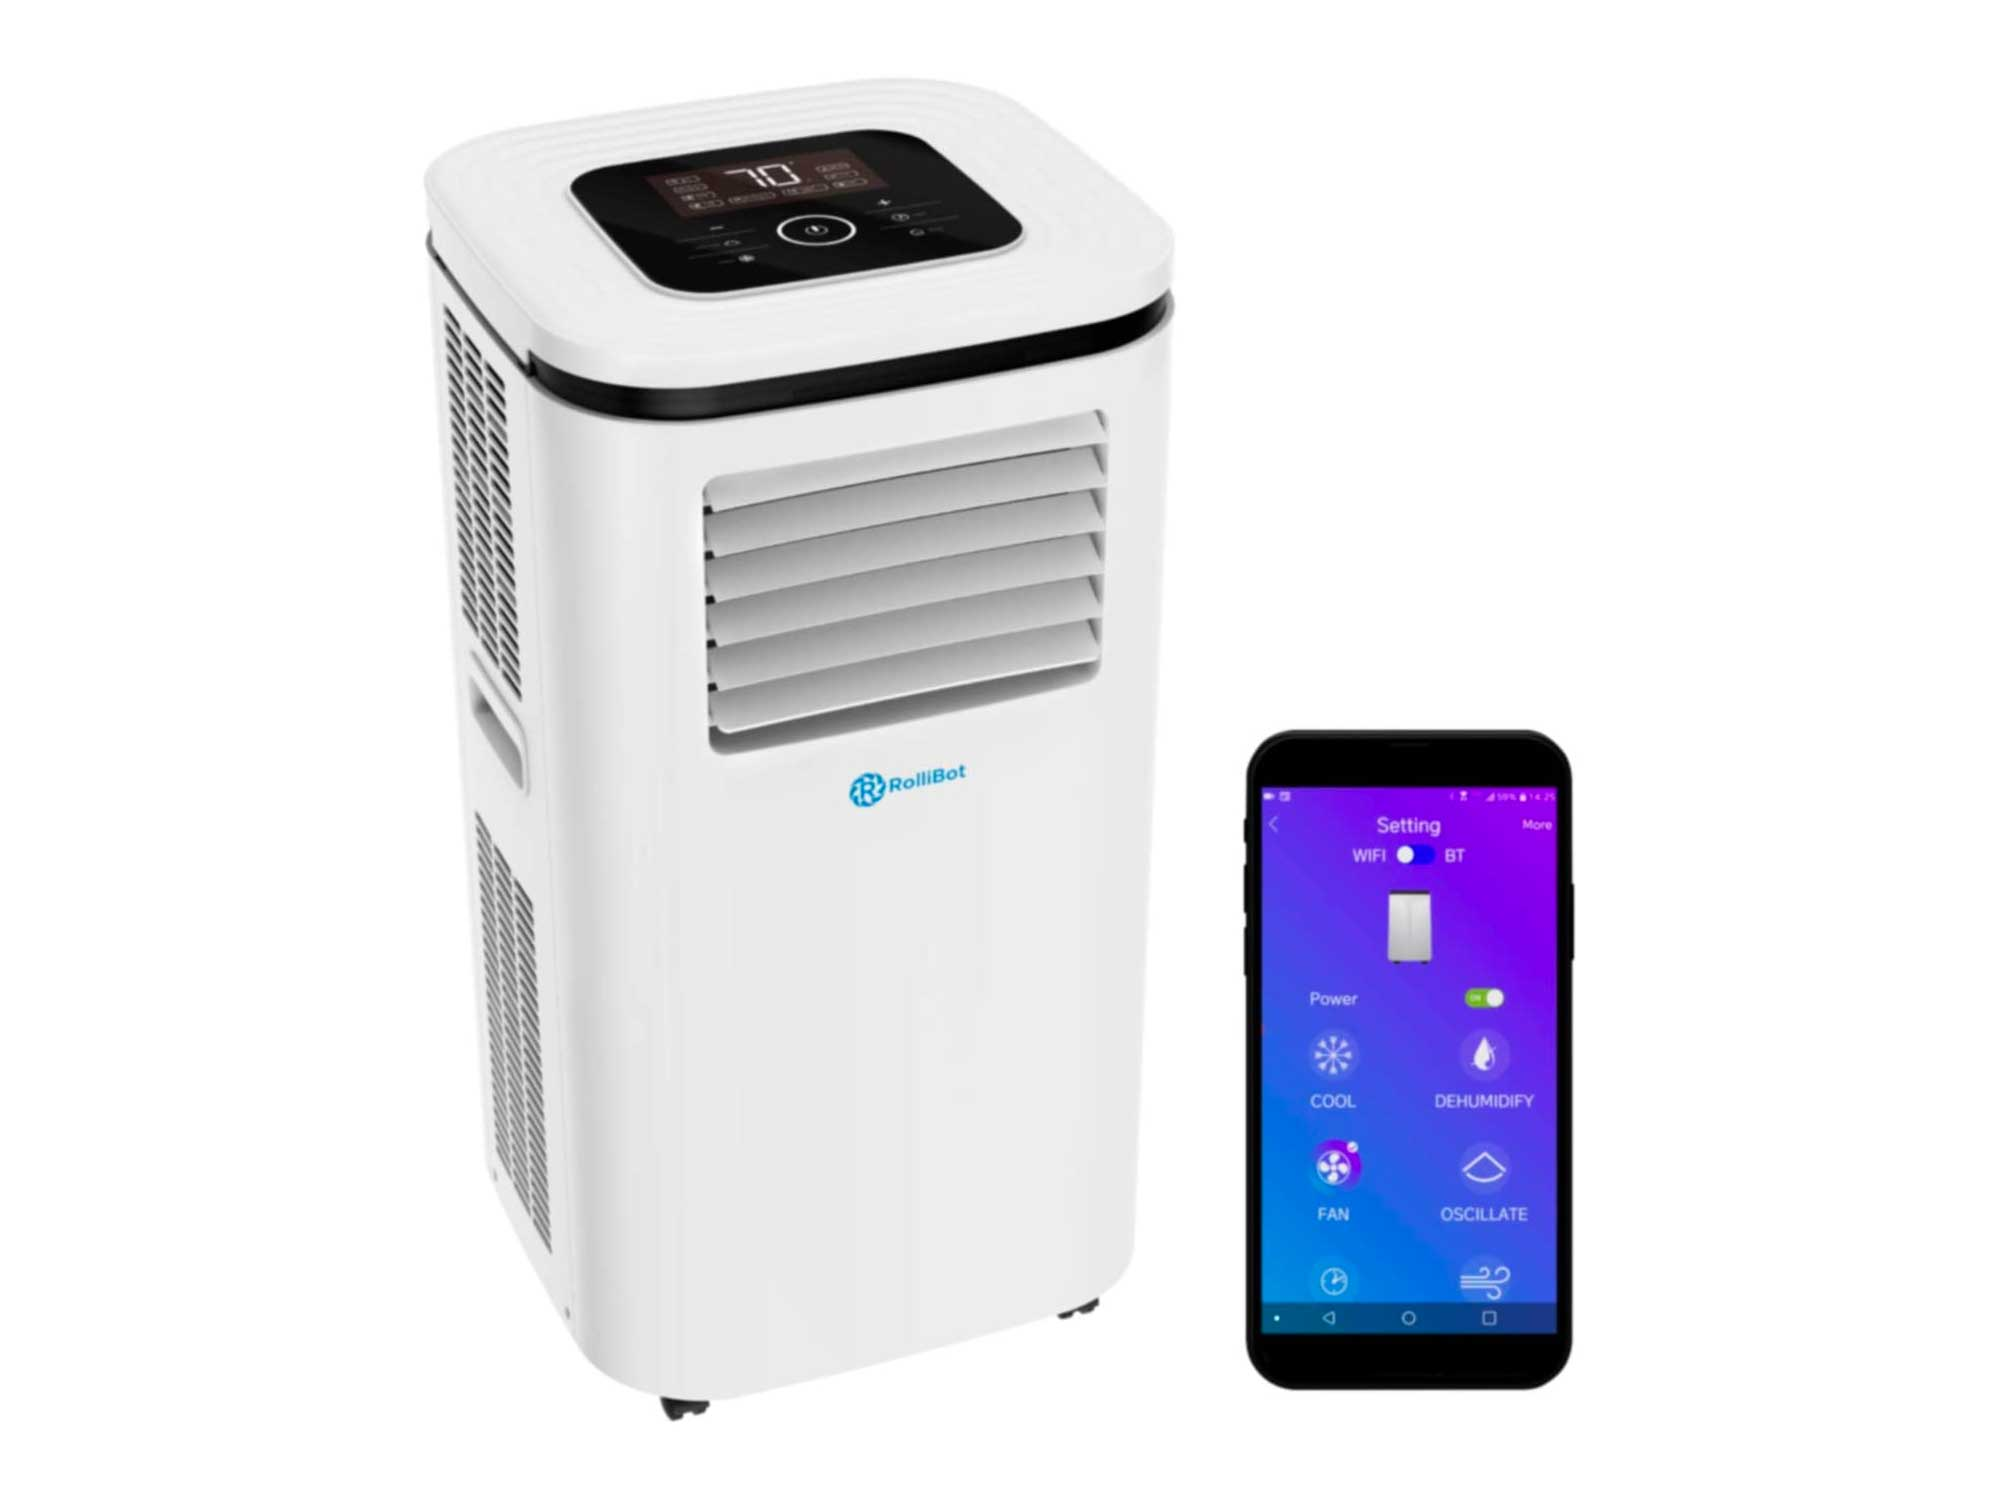 Rollibot ROLLICOOL Portable Air Conditioner w/App & Alexa Voice Control | Wi-Fi Enabled Portable AC & Dehumidifier | Quiet Operation, Easy Installation (14,000 BTU, White)